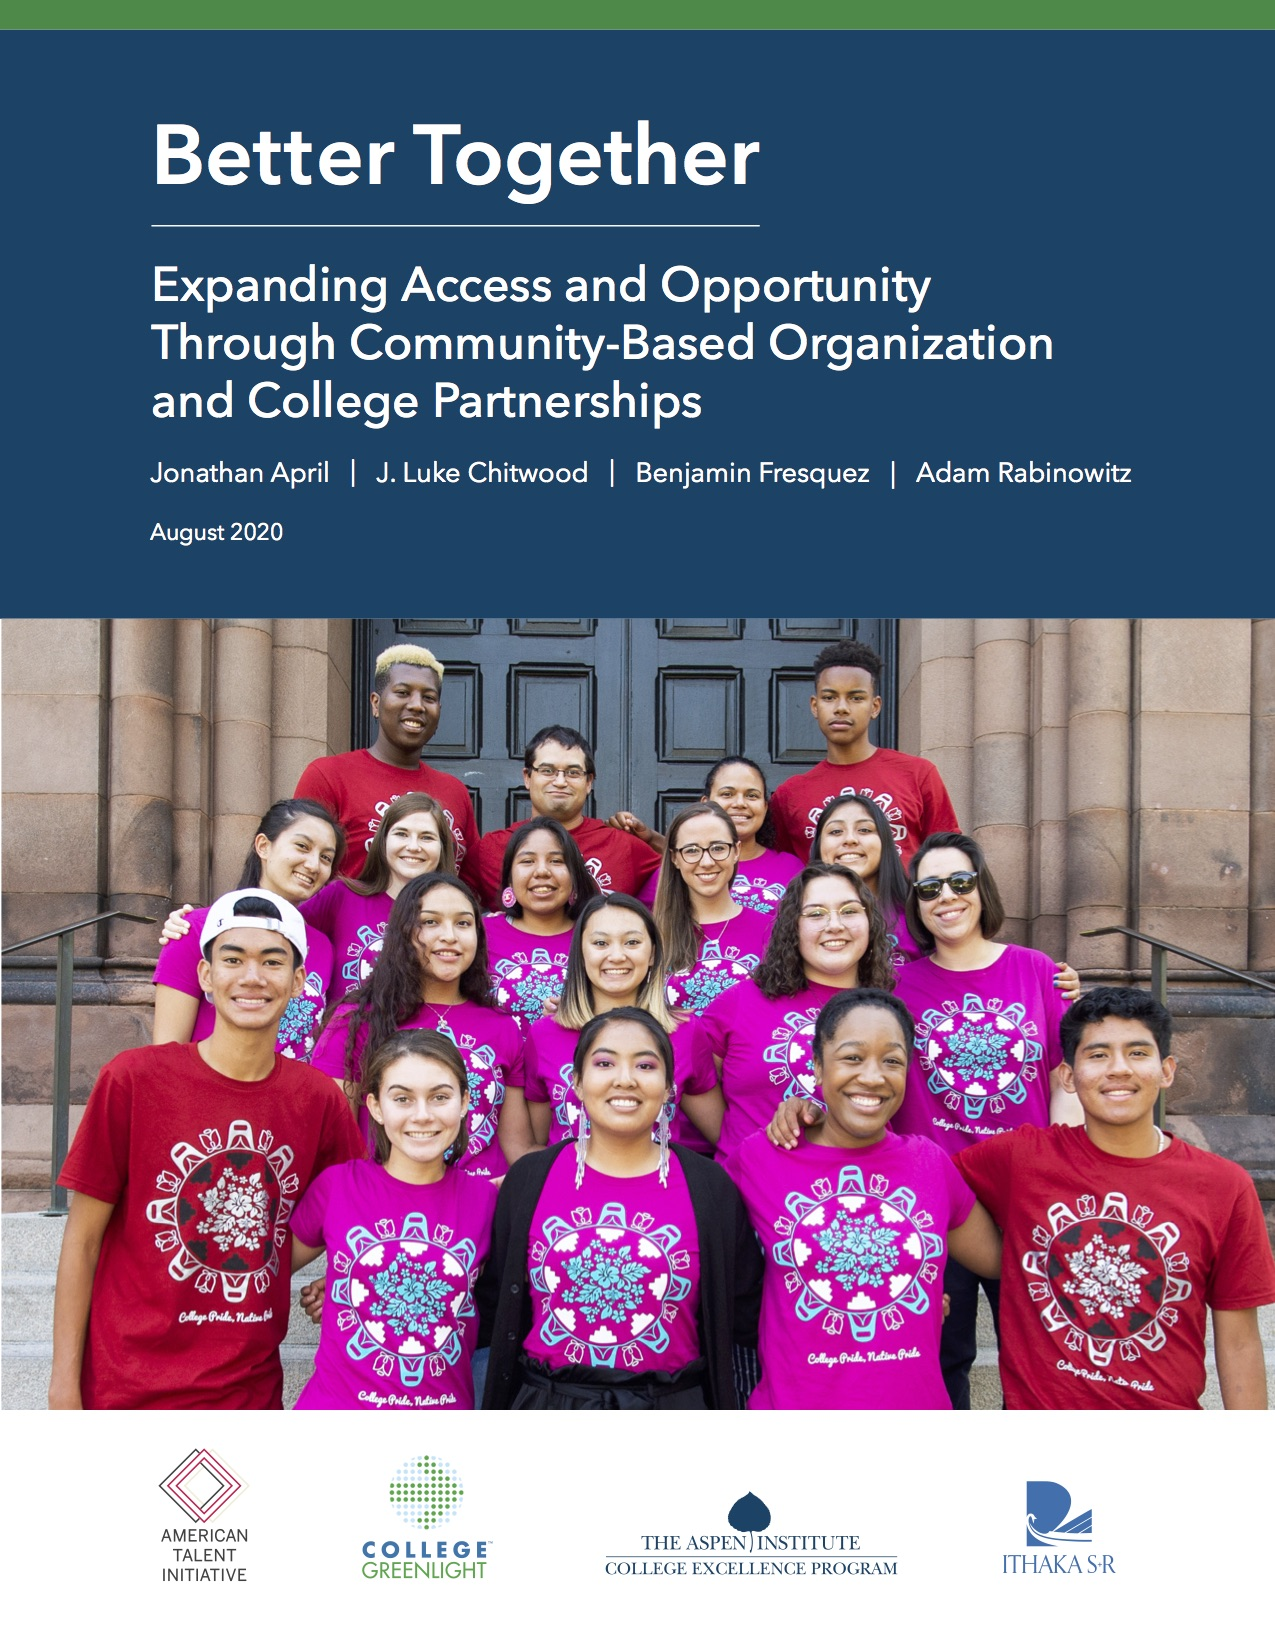 Better Together: Expanding Access and Opportunity Through Community-Based Organization and College Partnerships